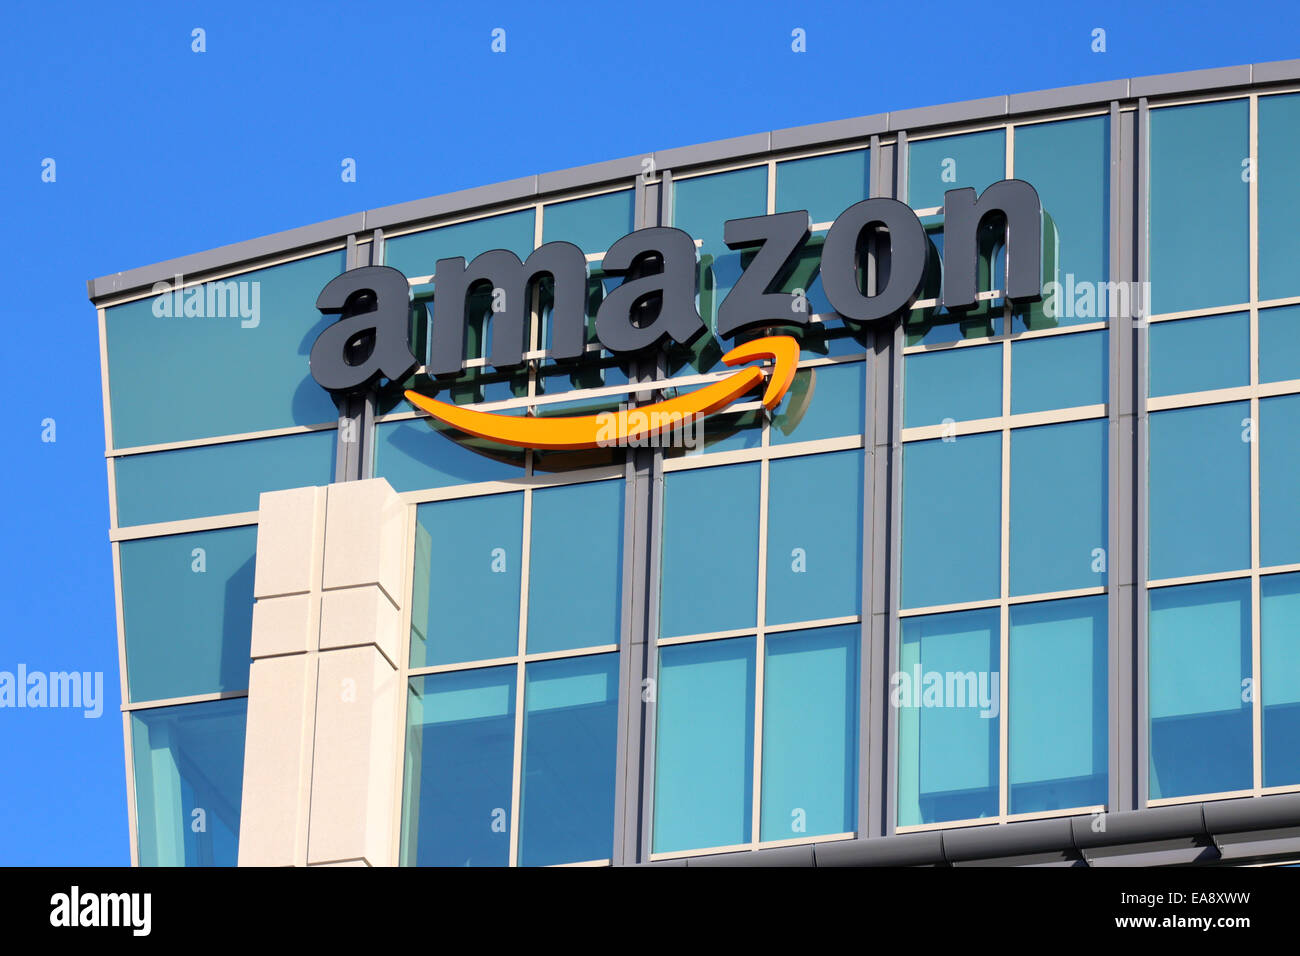 Edificio de oficinas corporativas de Amazon en Sunnyvale, California, EE.UU. Imagen De Stock